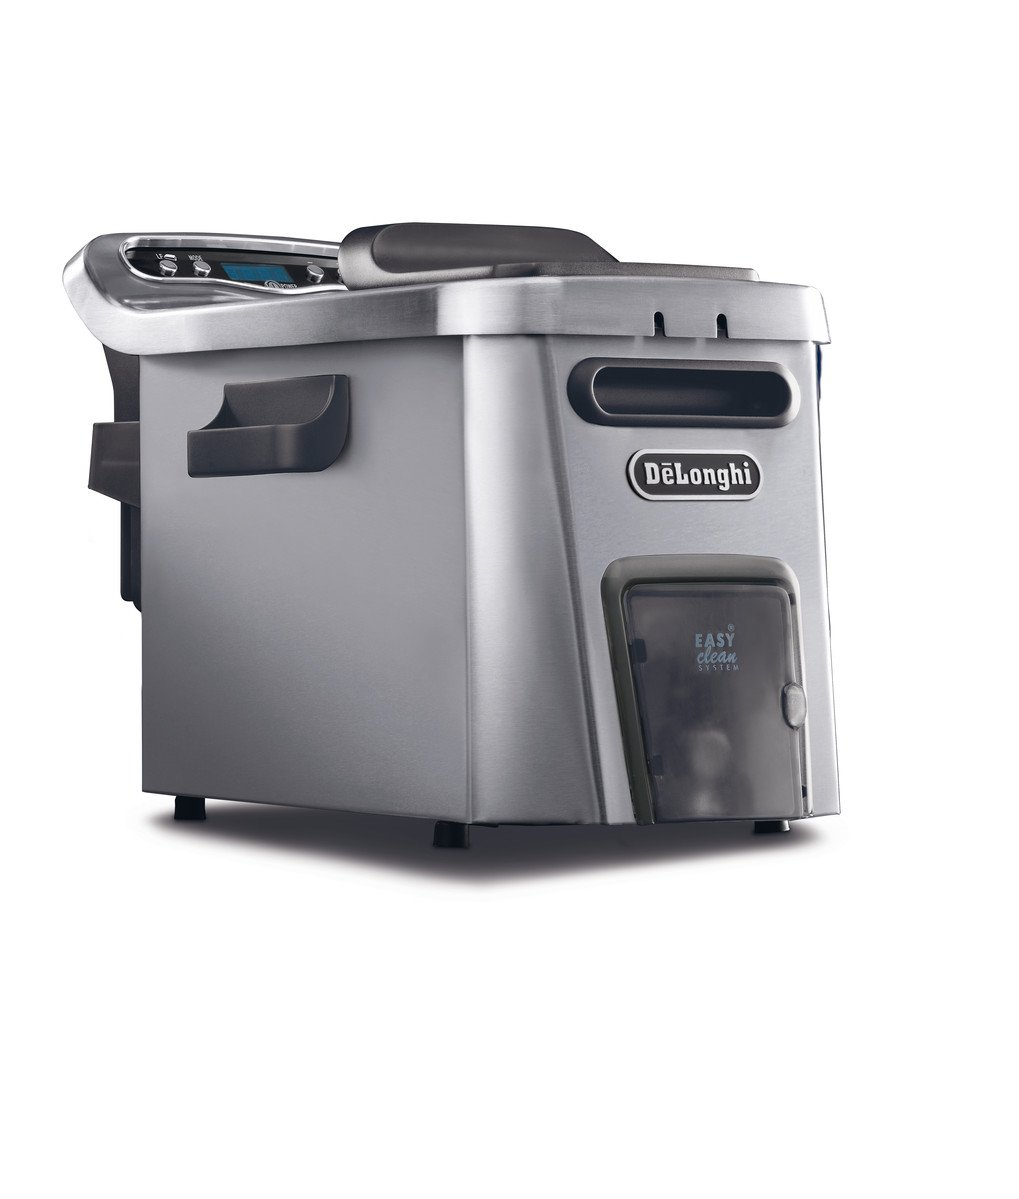 DeLonghi D44528DZ Livenza Easy Clean Deep Fryer, Silver